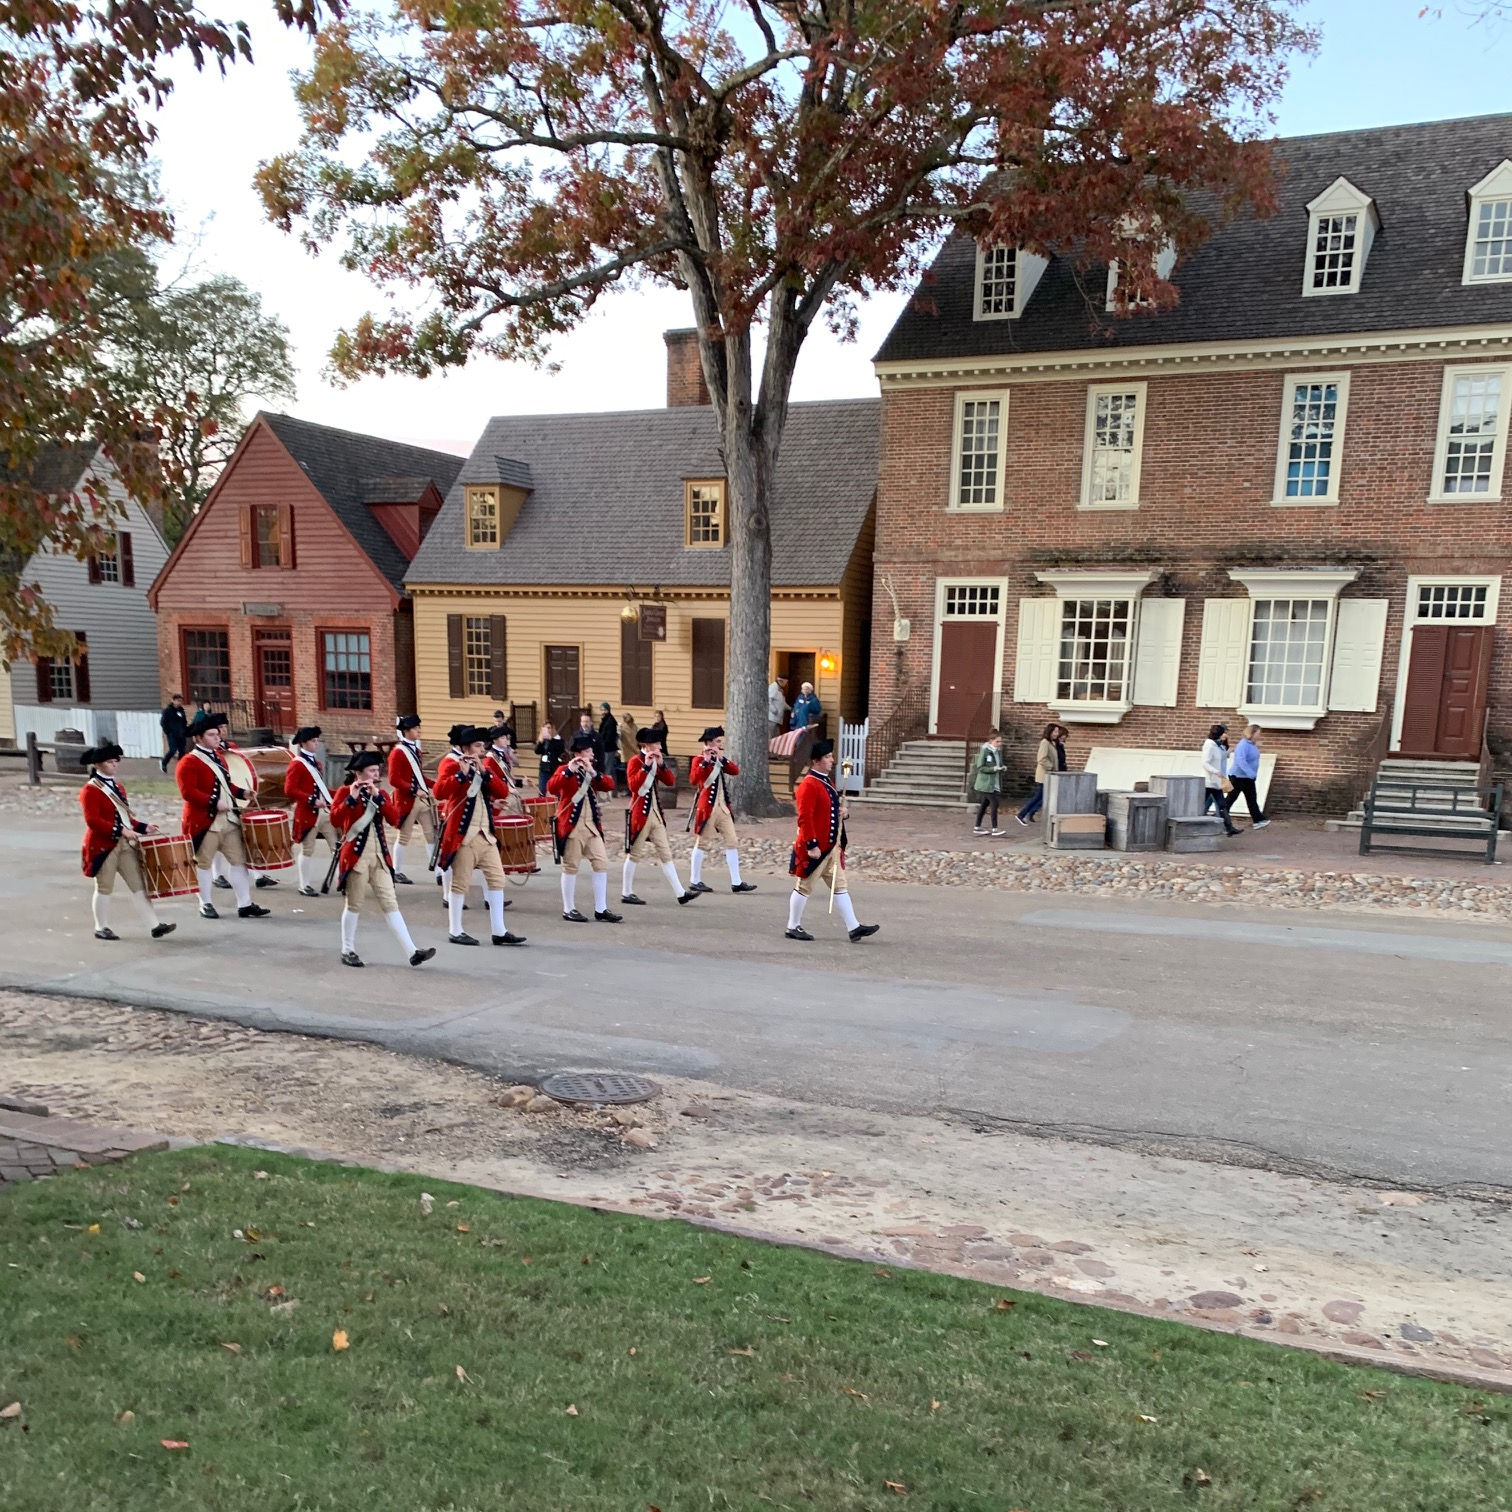 The Colonial Williamsburg Fifes and Drums march down the street wearing the distinctive red coats of British military uniforms.